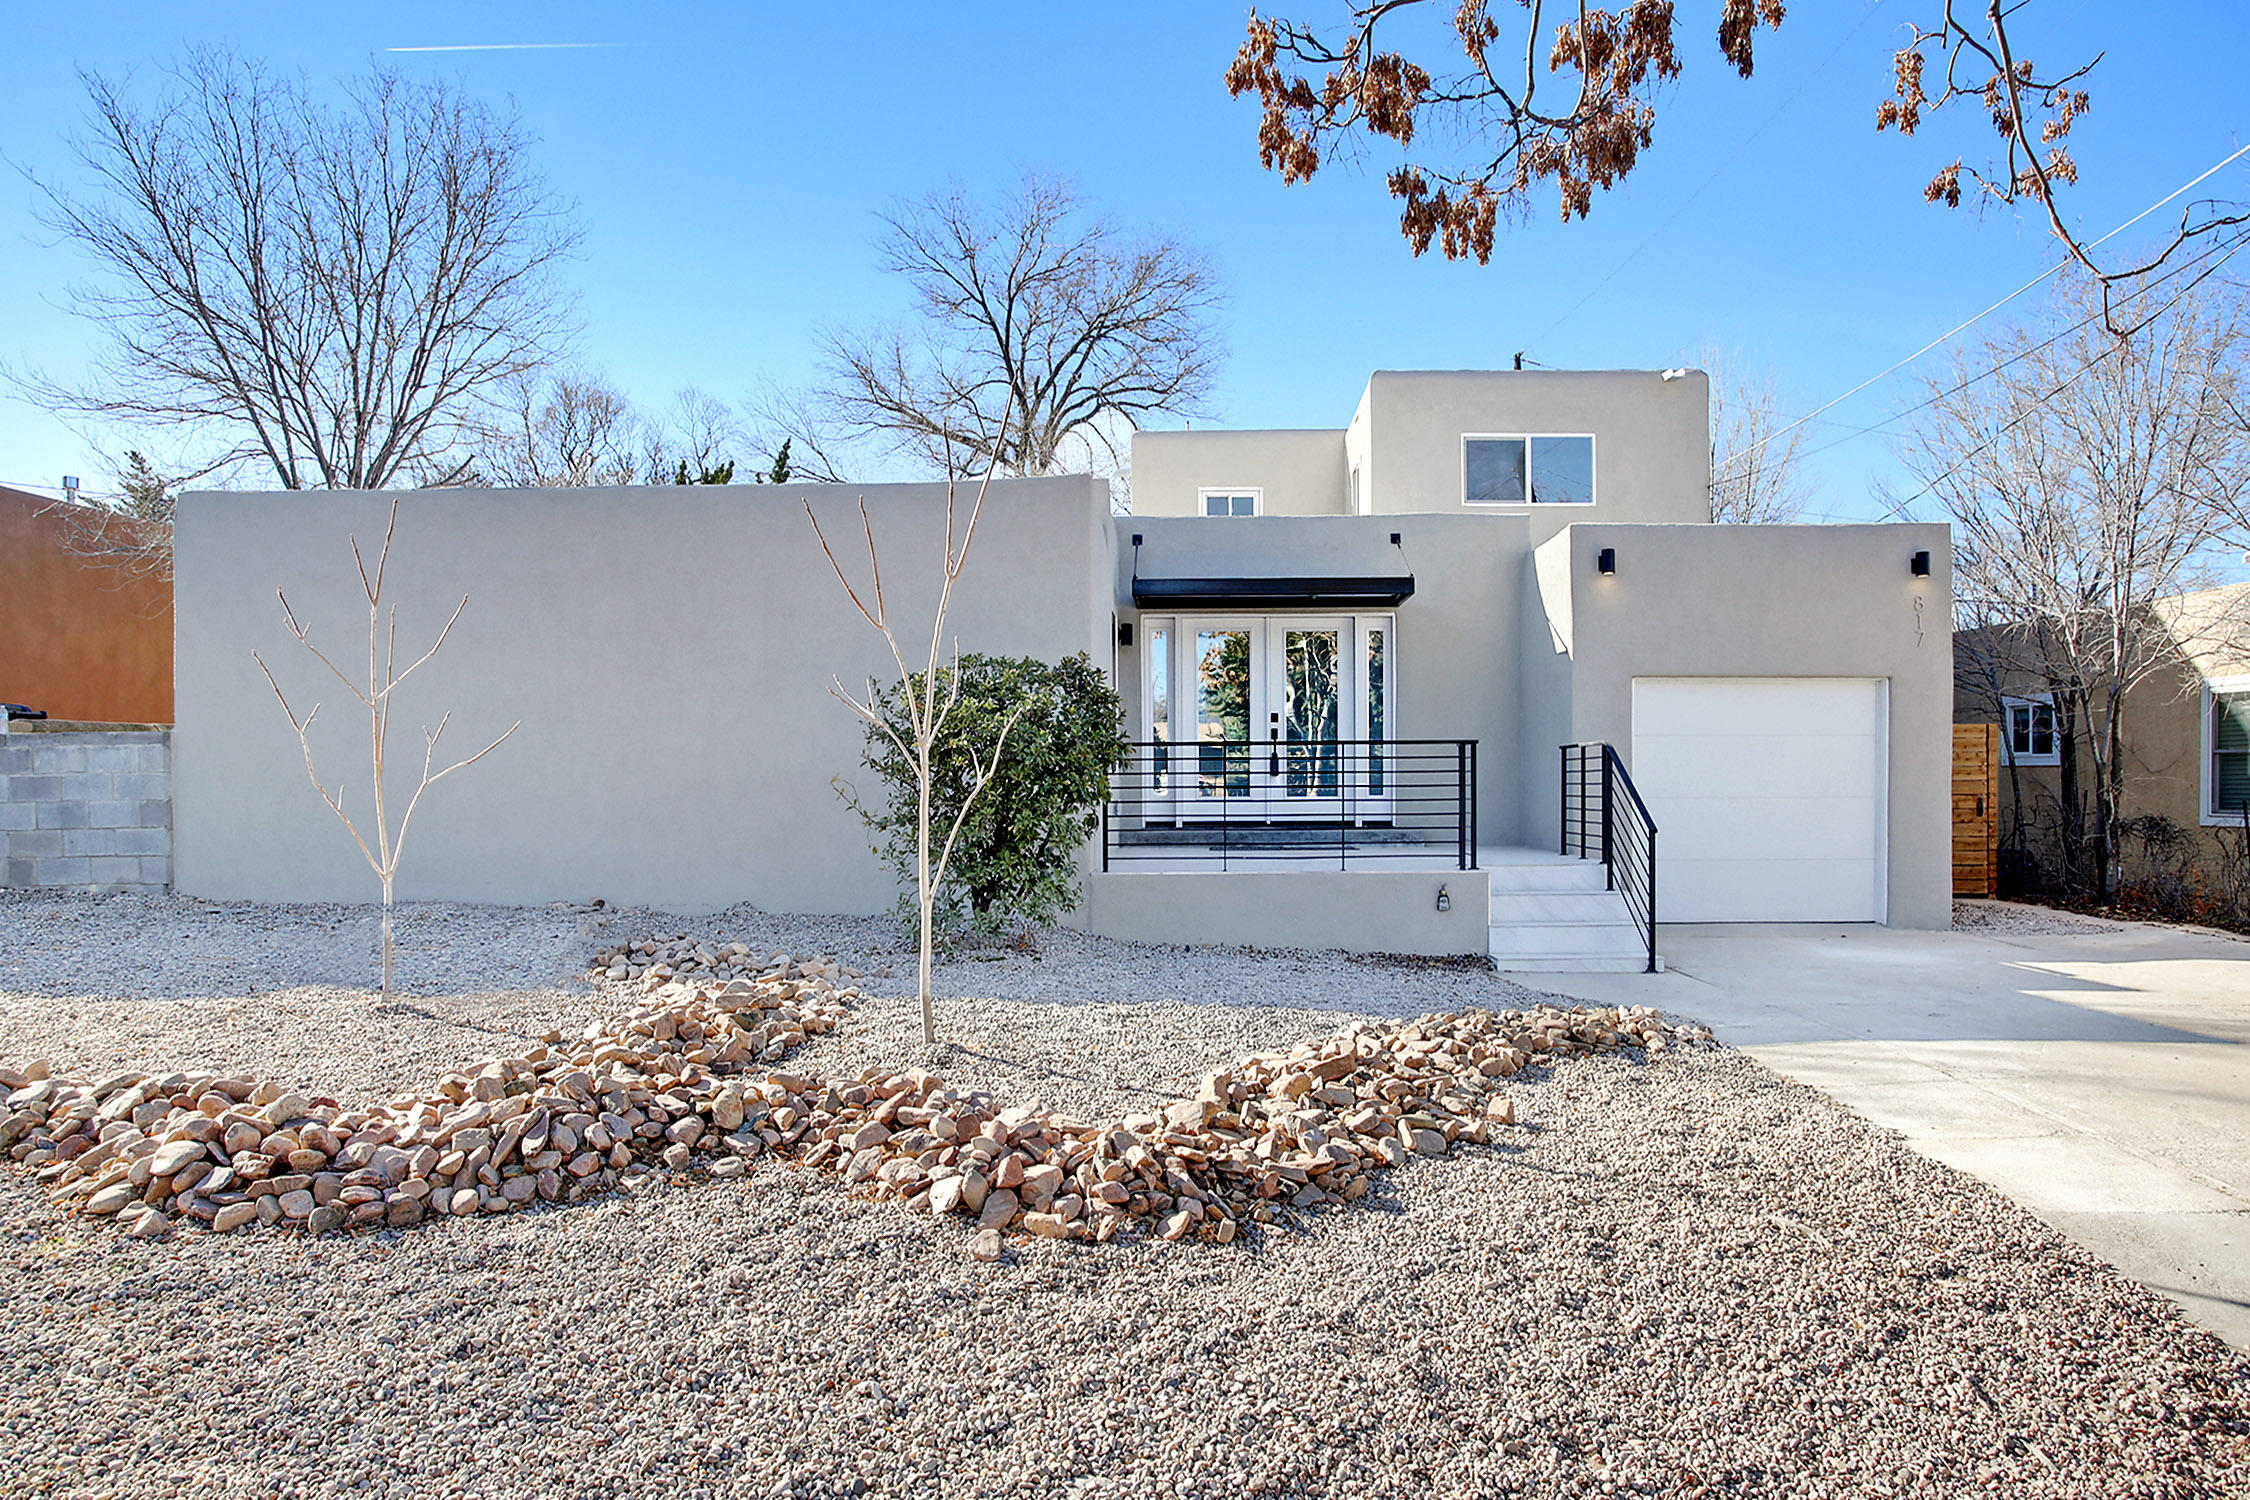 This Apex design property in UNM North is like a new home, & has been extensively updated into a contemporary show piece. An amazing light filled great room at the center of the floor plan, flows into the open kitchen with a corner fireplace, & eat at island. Quartz counters, new cabinets, stainless steel appliances, including a 5 burner stove, pantry & subway tile backslash from counter to ceiling. French oak wood floors throughout with large format tiles in the wet areas. Owner's suite on main level has a large walk in closet with a barn door. Luxurious bath with floating under lit double sinks, jet tub, separate shower & water closet. 2 bedrooms upstairs with loft office space. Home boasts a new TPO roof, hot water heater, thermal windows, refrigerated air & heat. Backyard with pergola.